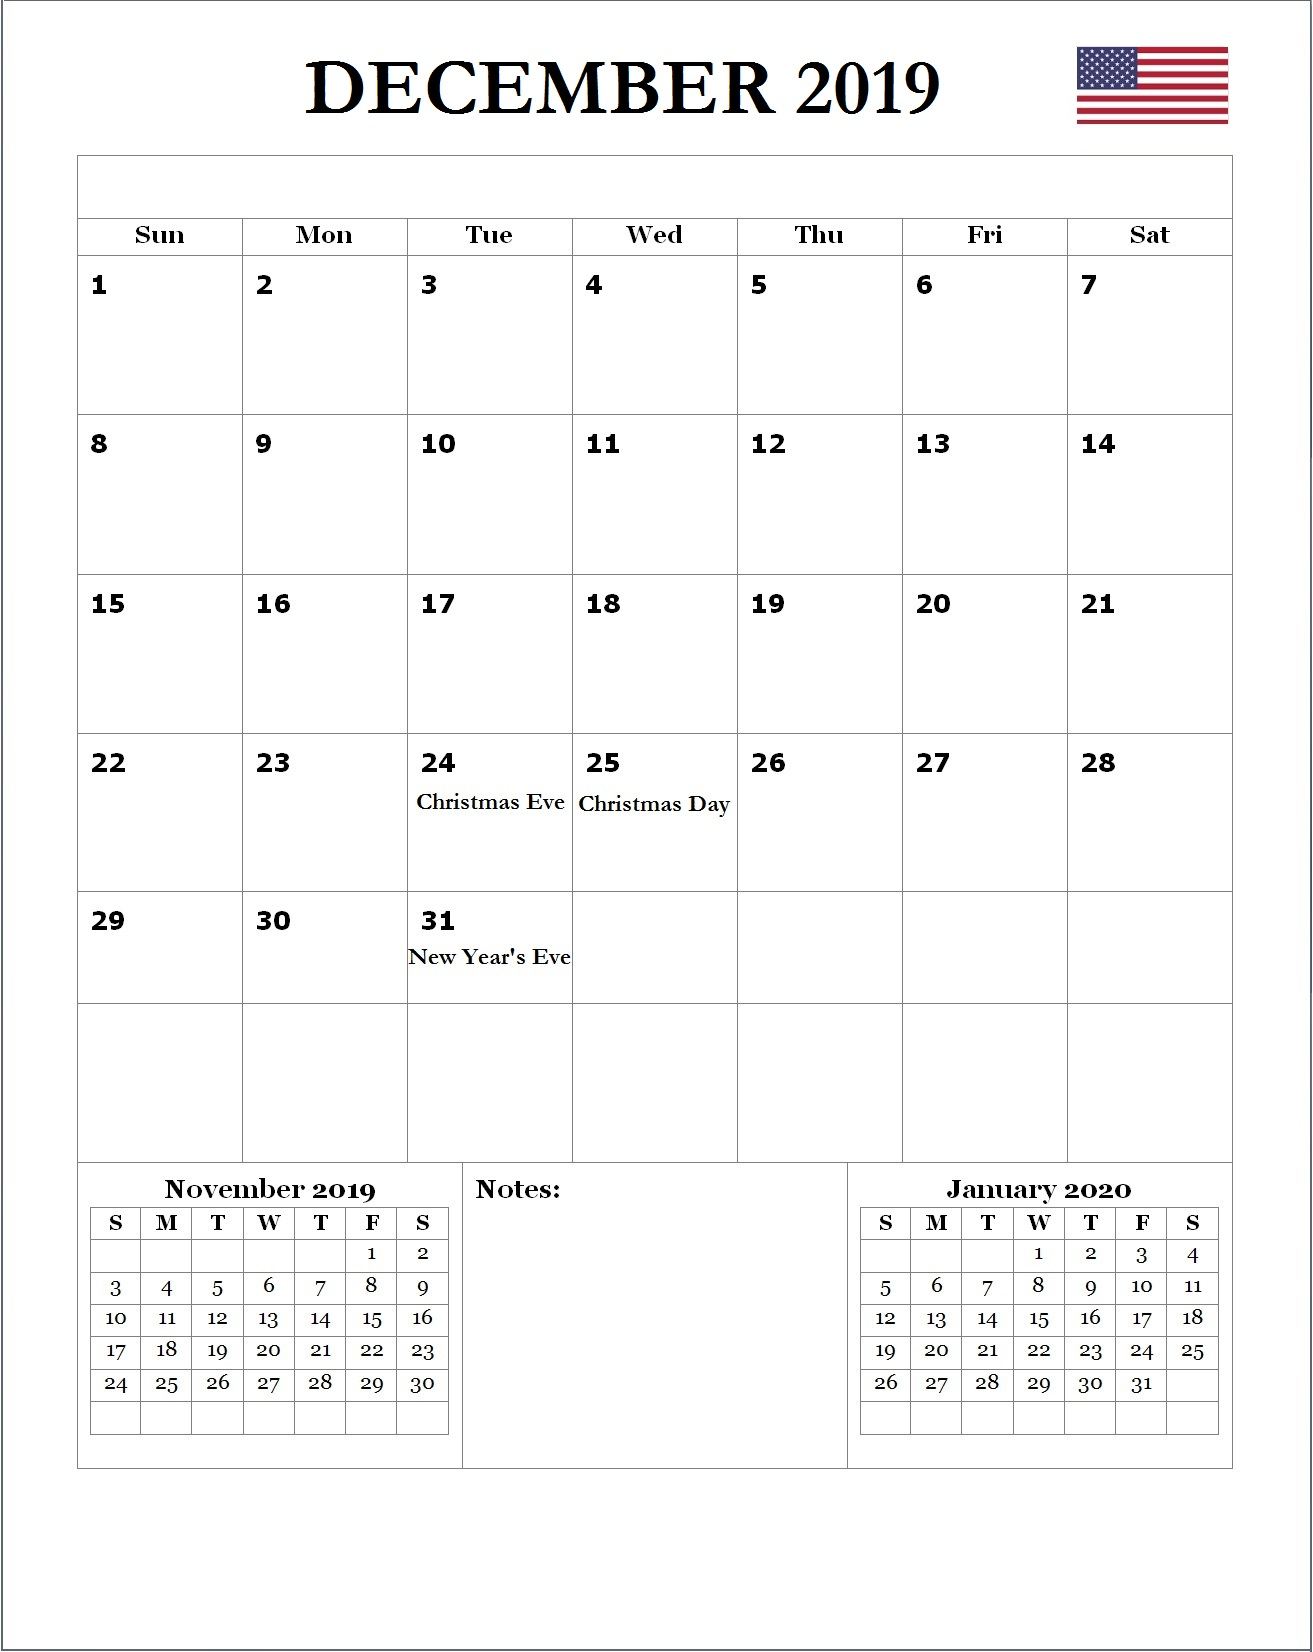 2019 December USA Holidays Calendar